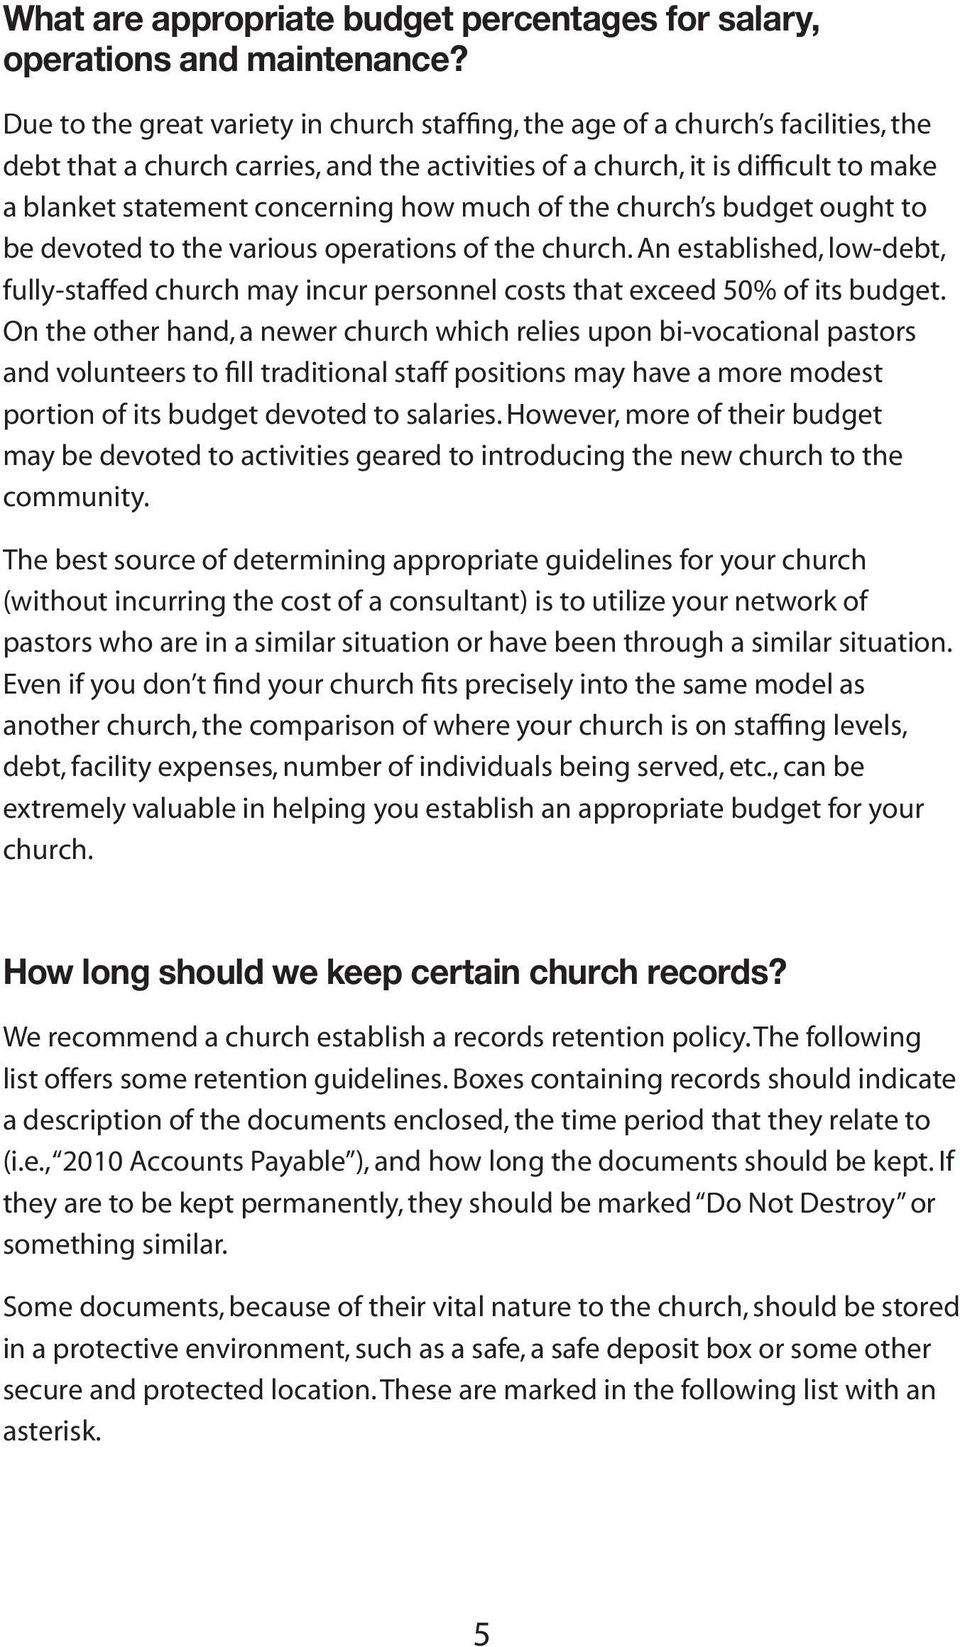 how much of the church s budget ought to be devoted to the various operations of the church. An established, low-debt, fully-staffed church may incur personnel costs that exceed 50% of its budget.